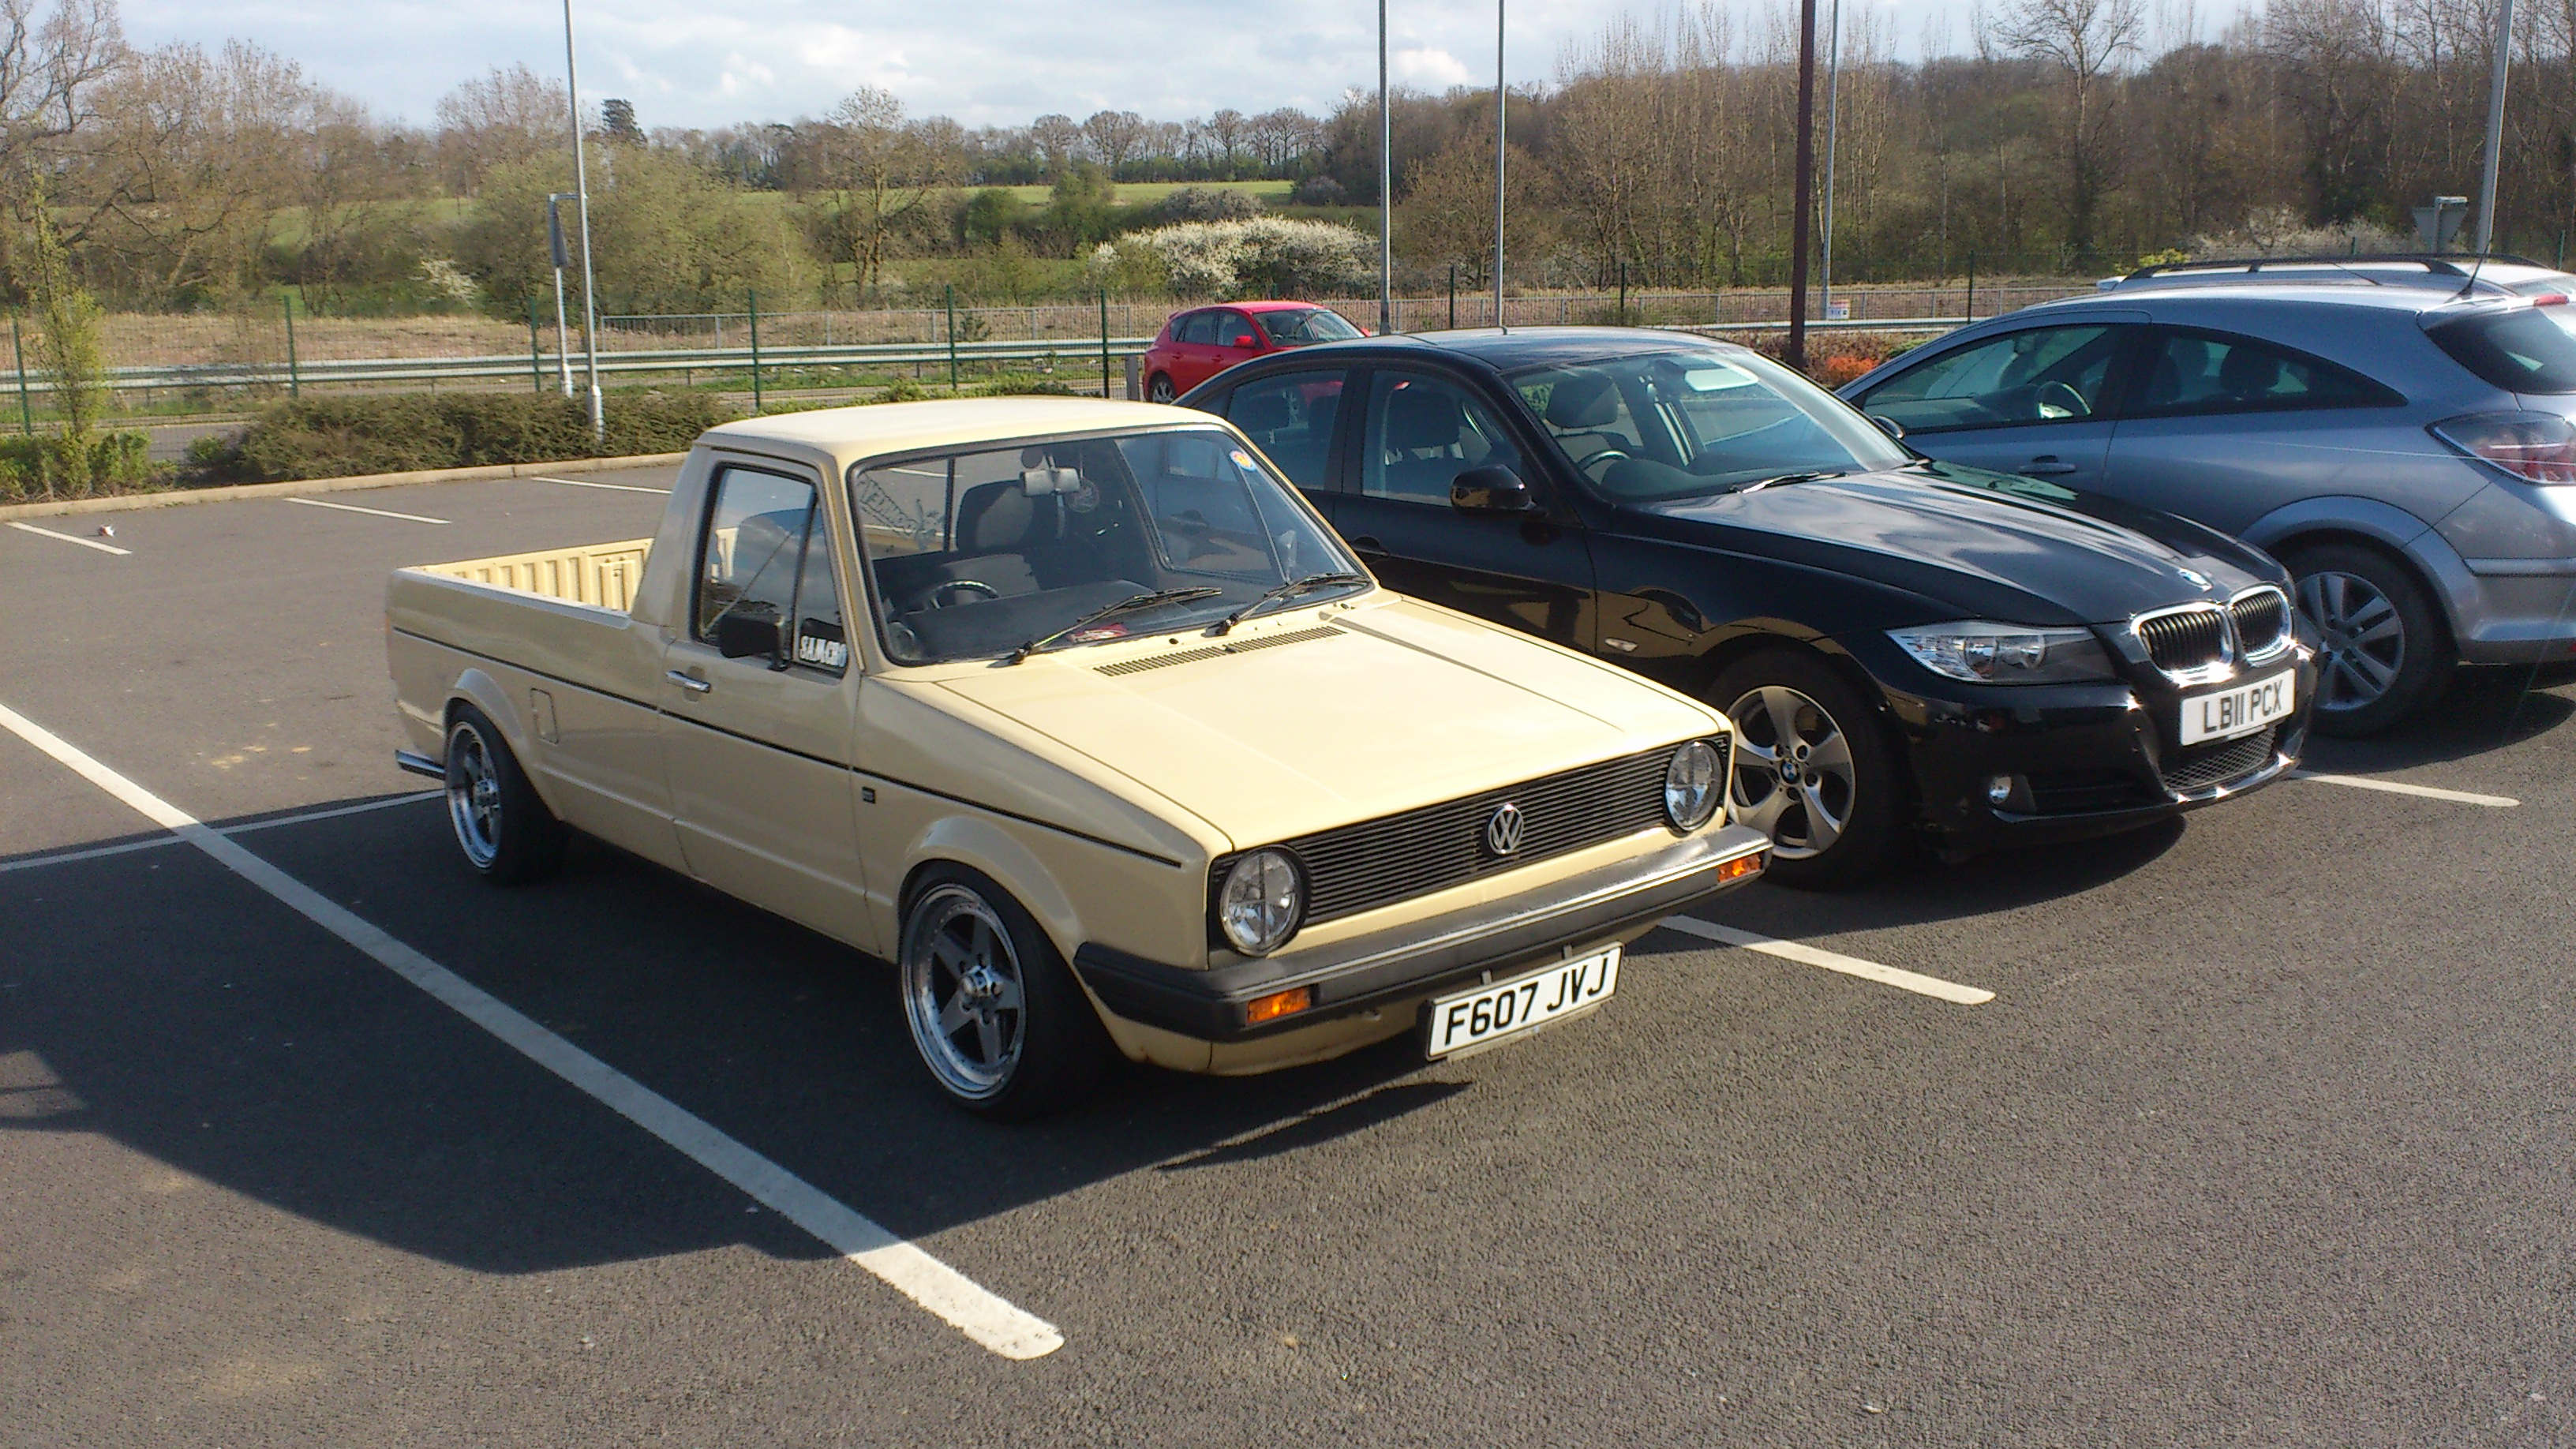 Spotted A Sweet Mk1 Golf Pick Up In Corby Today